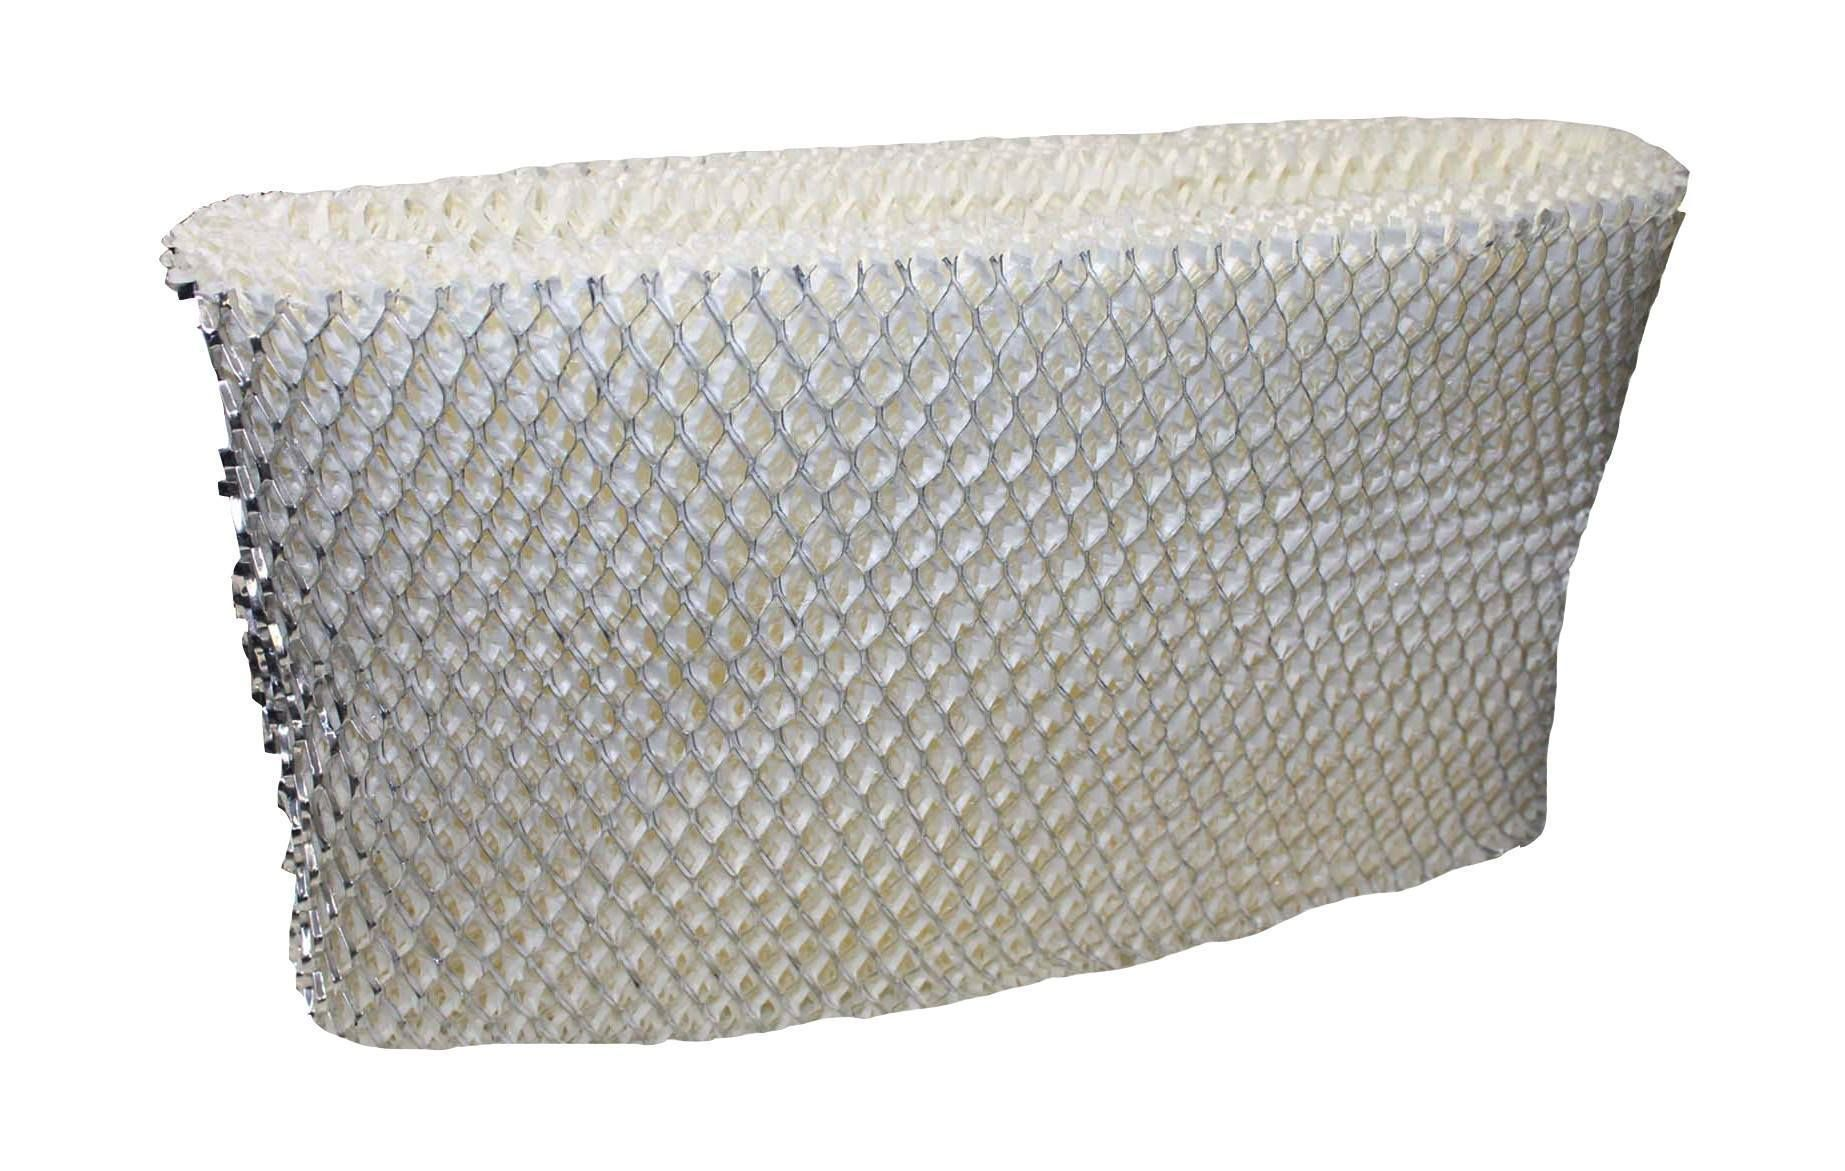 Replacement Humidifier Wick Filter, Fits Holmes HM850